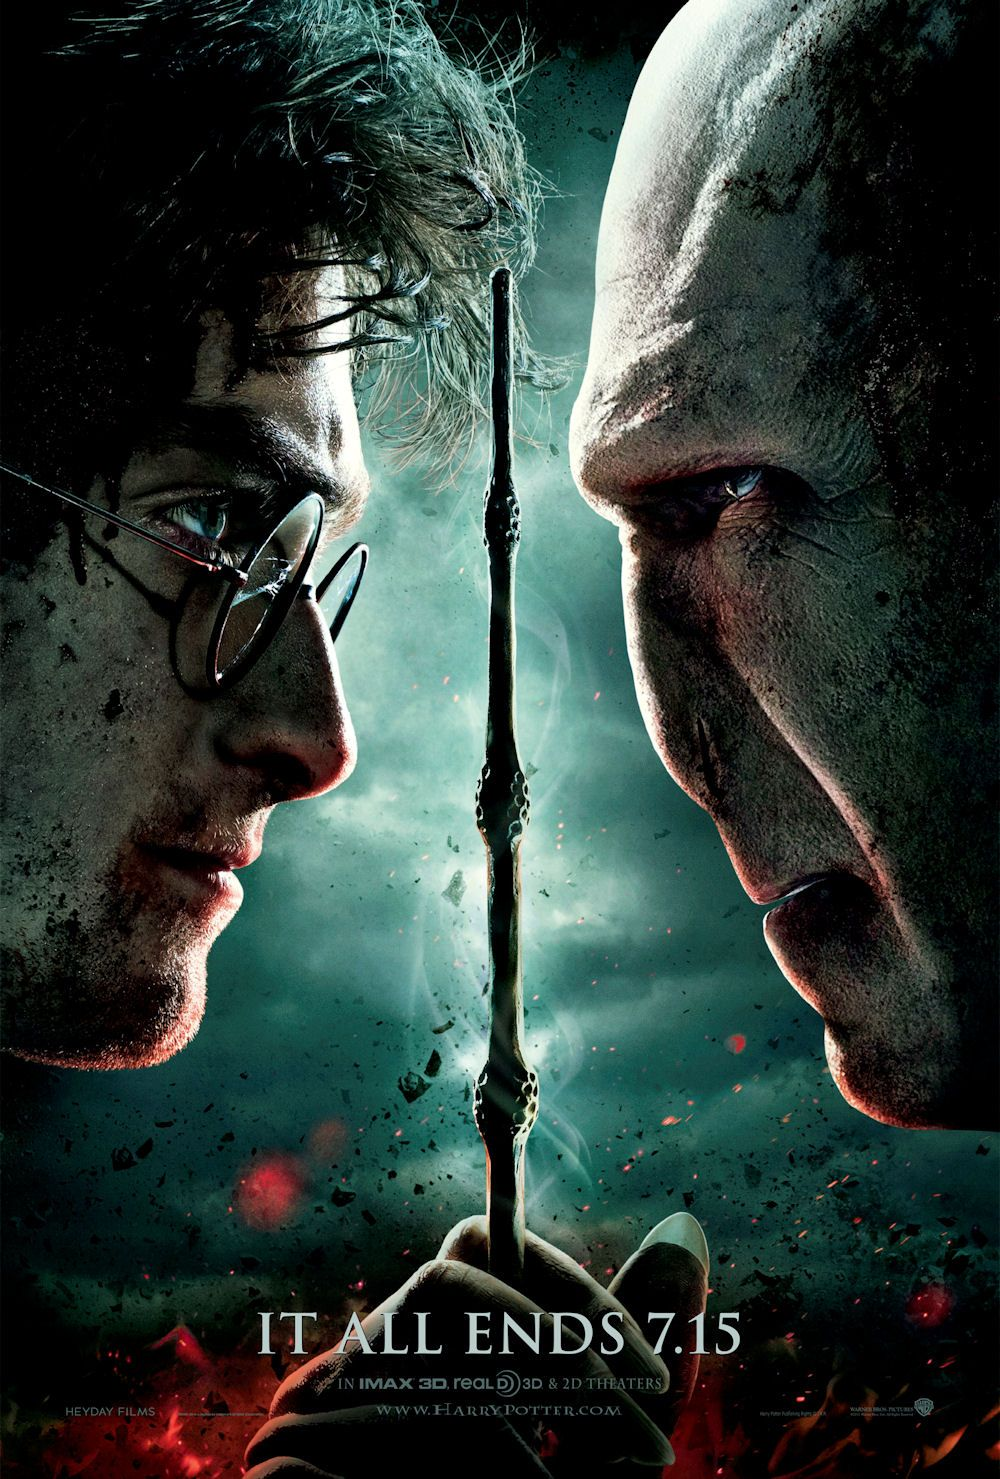 Harry Potter And The Deathly Hallows Part 2 Poster Appropriately Gritty Harry Potter Vs Voldemort Harry Potter Funny Deathly Hallows Part 2